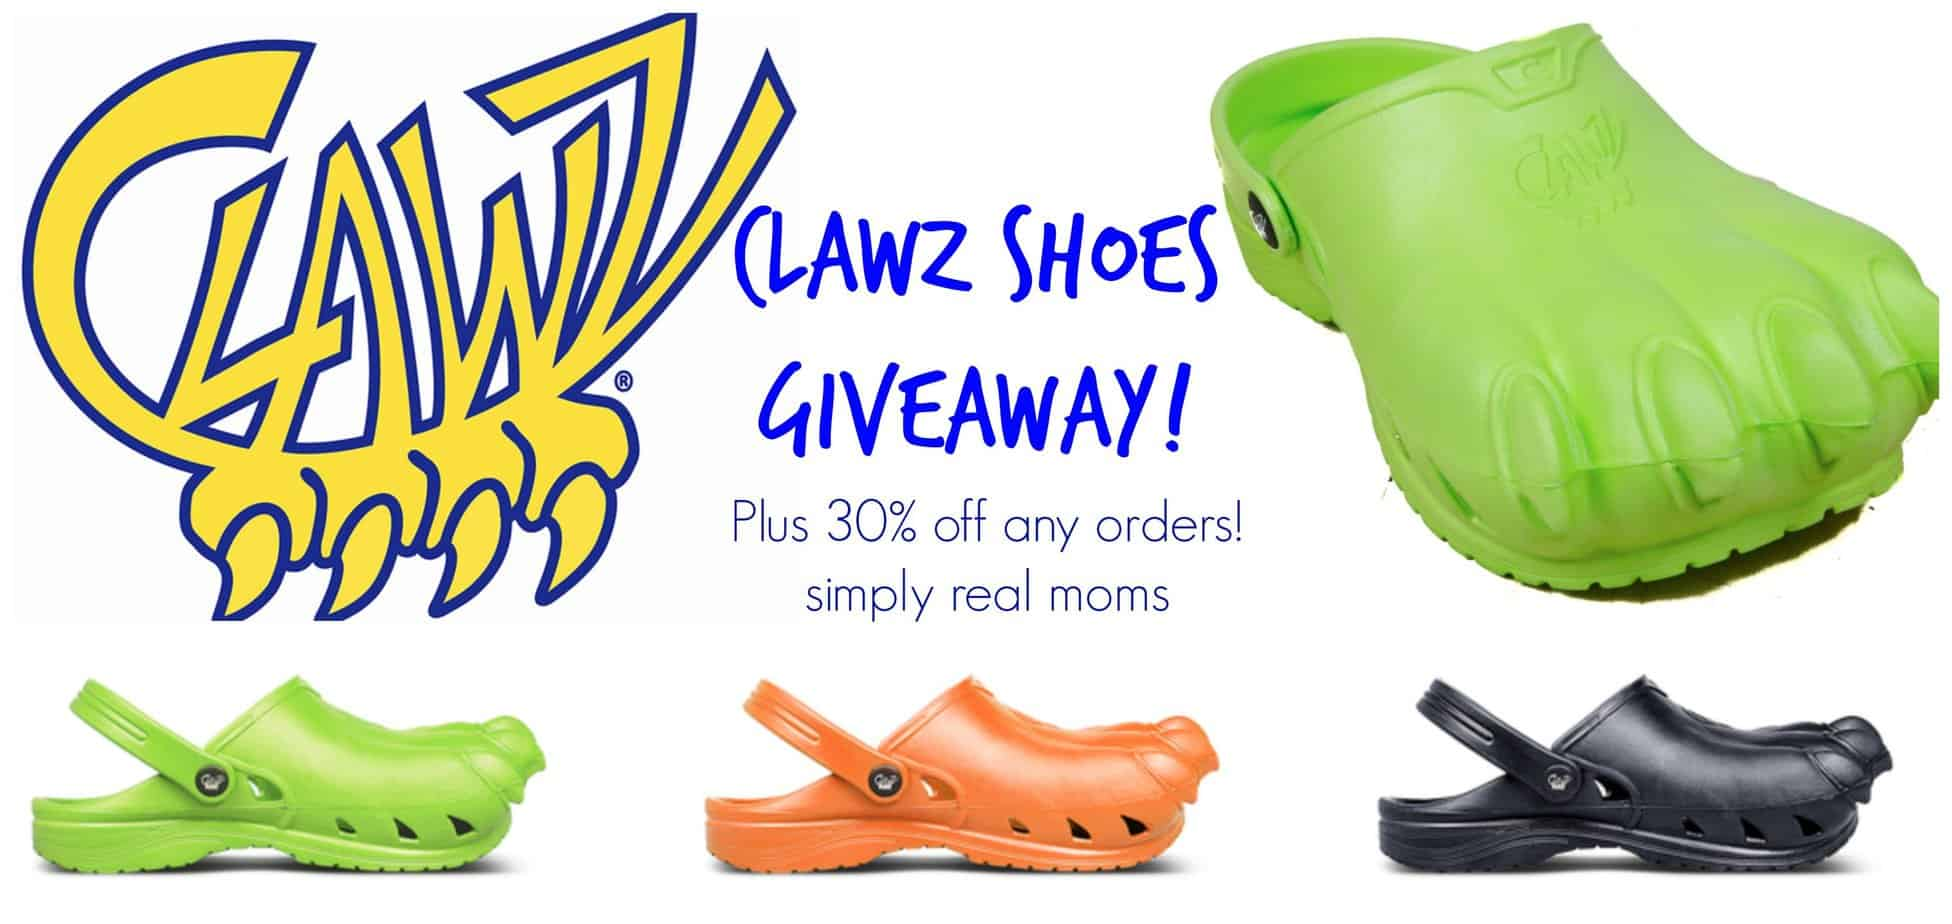 Clawz Shoes Giveaway!